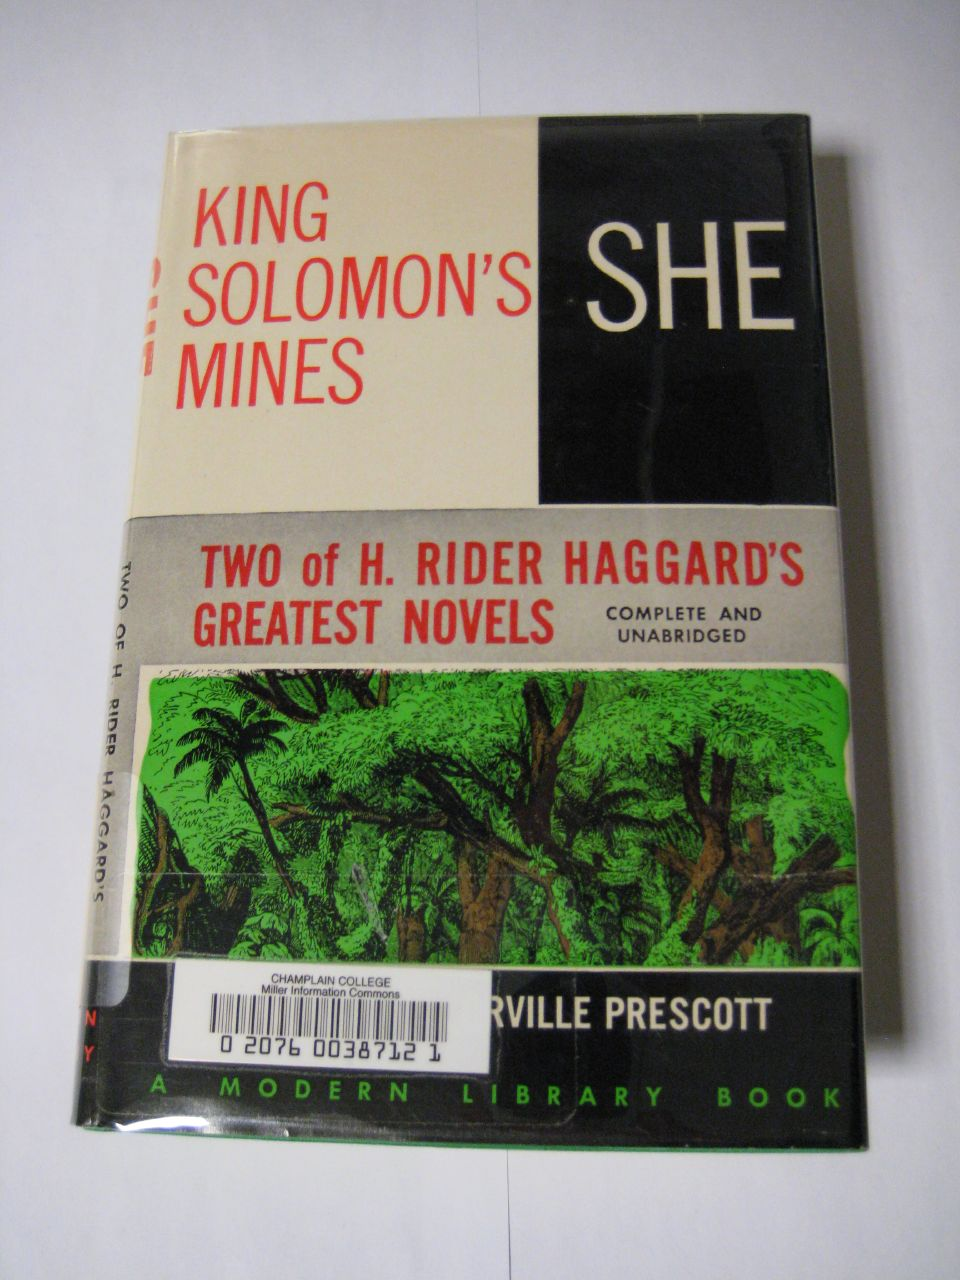 King Solomon's Mines by H. Rider Haggard, book.